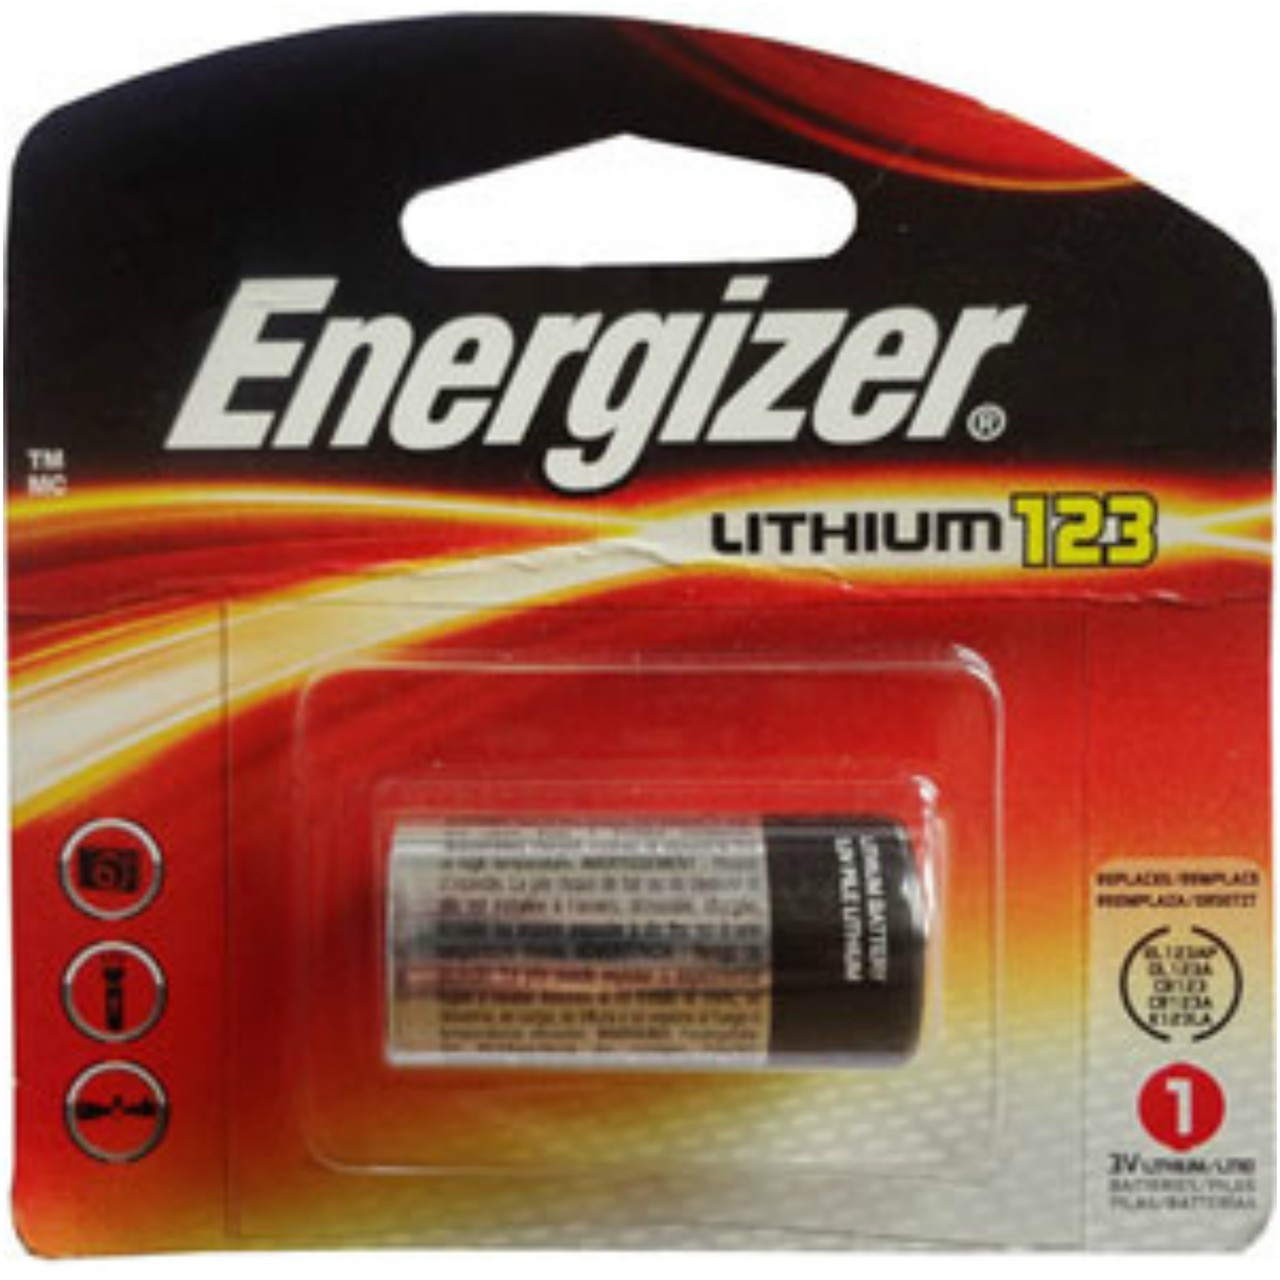 (12 Pieces) Energizer Lithium CR123 3V Lithium Batteries EXP 2024 + FREE SHIPPING!